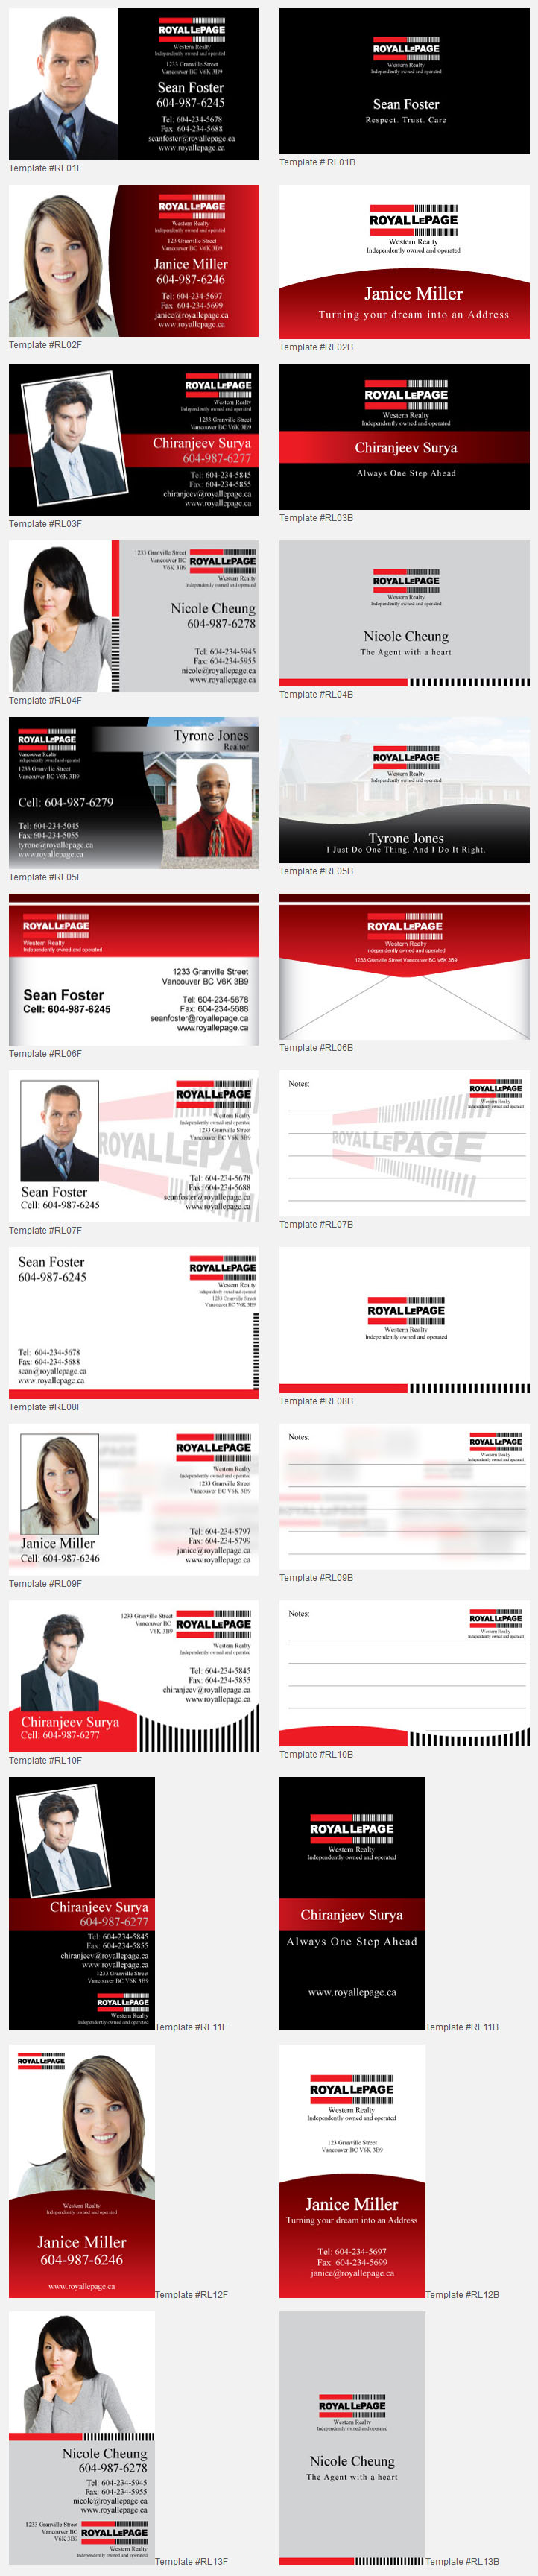 Royal lepage design templates unico print media specialty business cards reheart Image collections